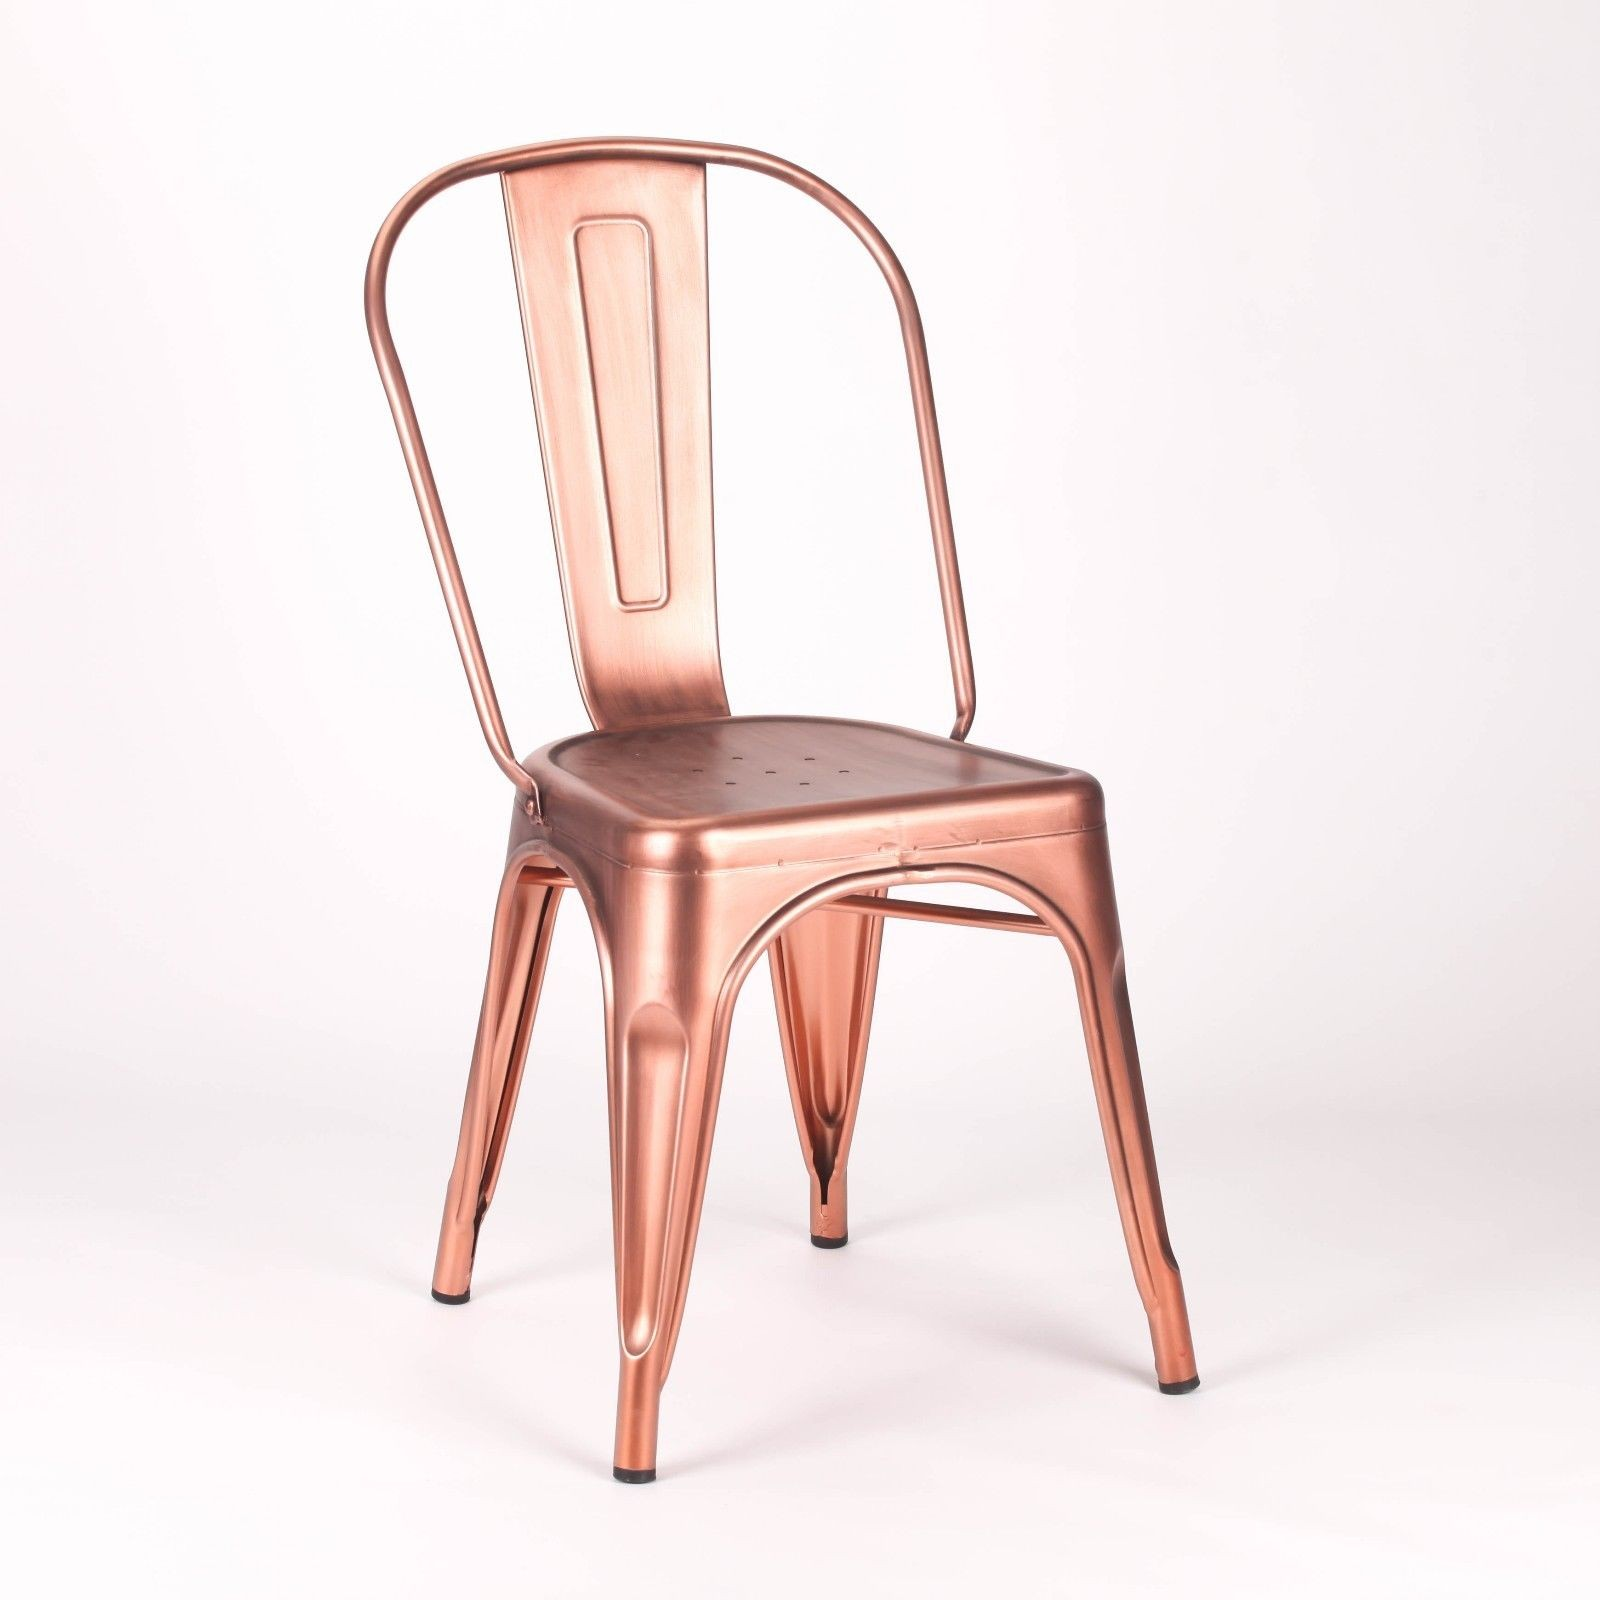 Vintage Tolix Style Metal Copper Industrial Dining Chair